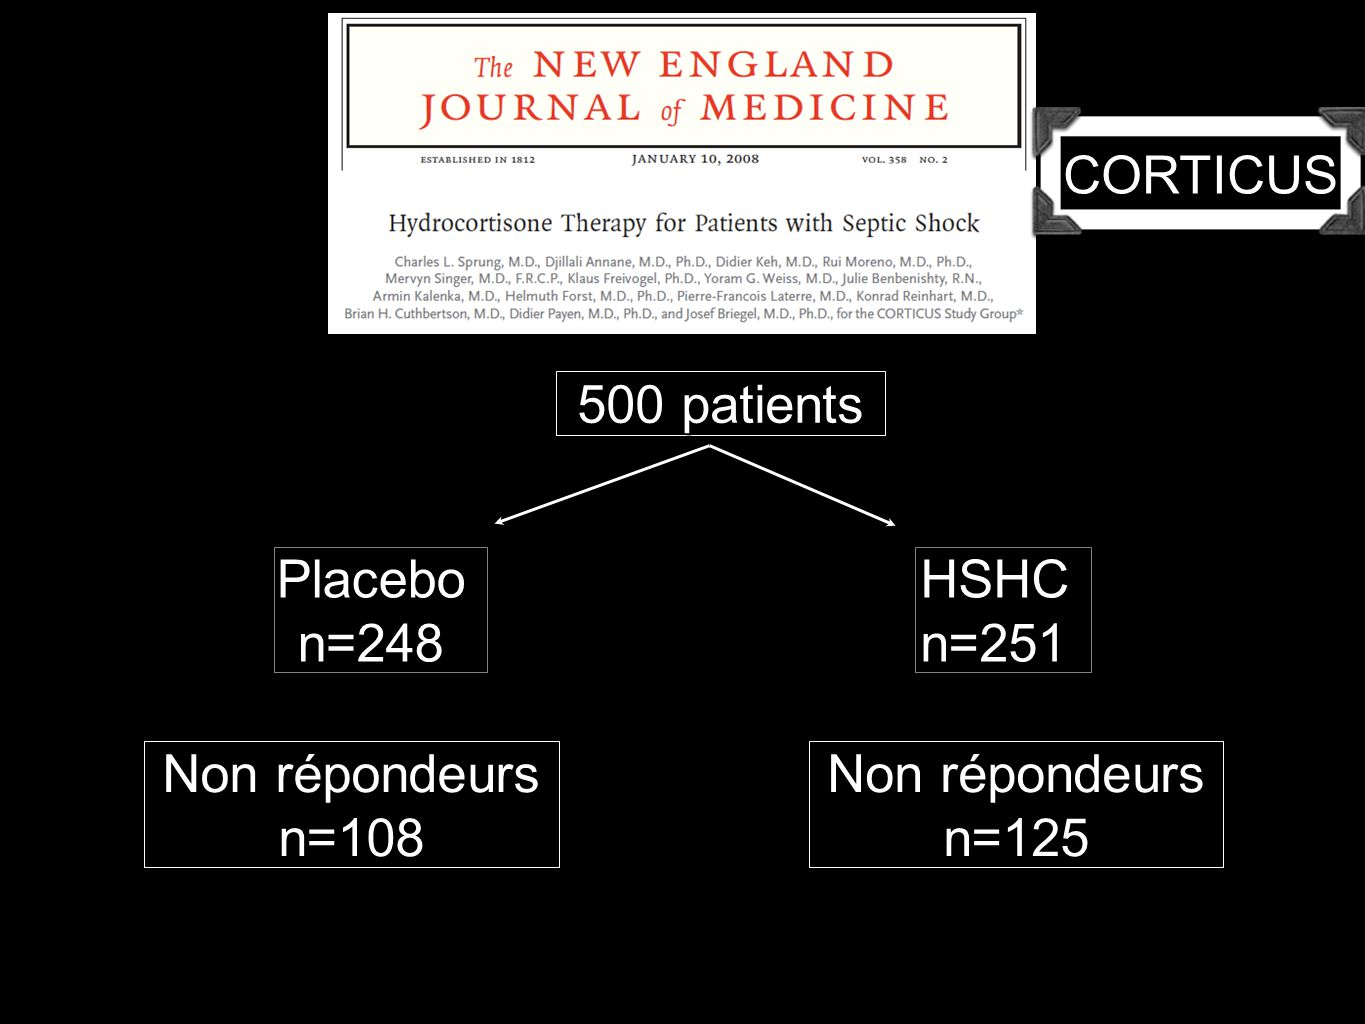 CORTICUS 500 patients Placebo n=248 HSHC n=251 Non répondeurs n=108 Non répondeurs n=125